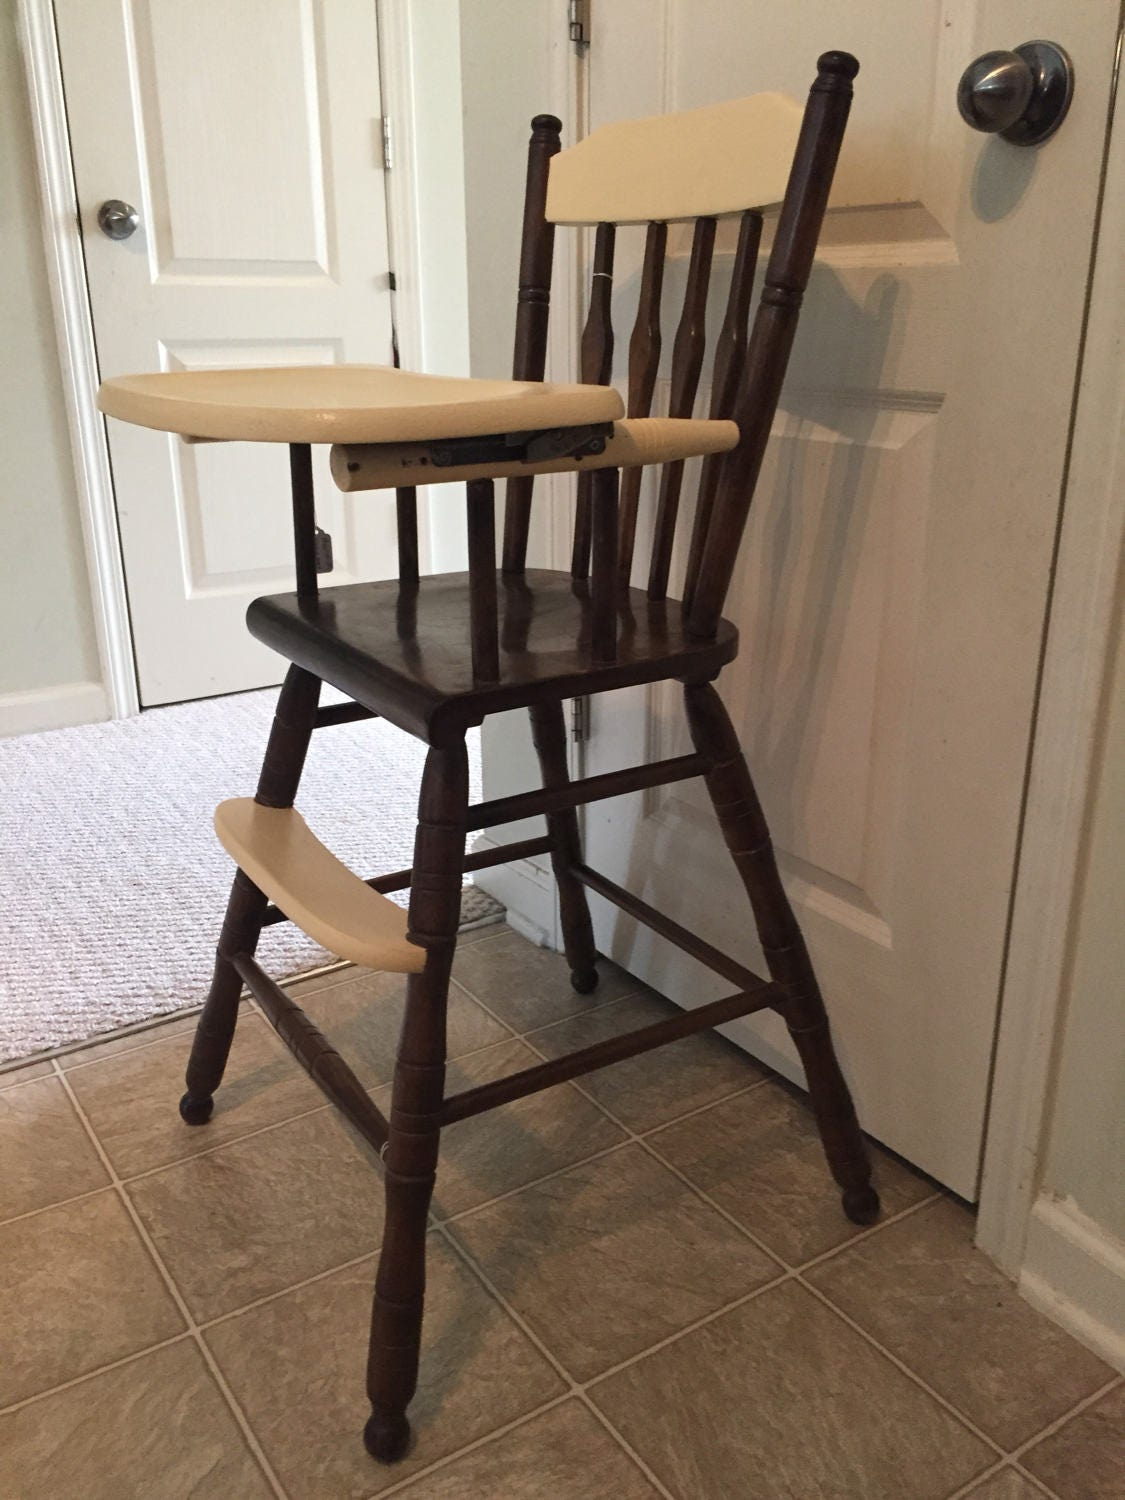 Painted wood high chair -  Zoom